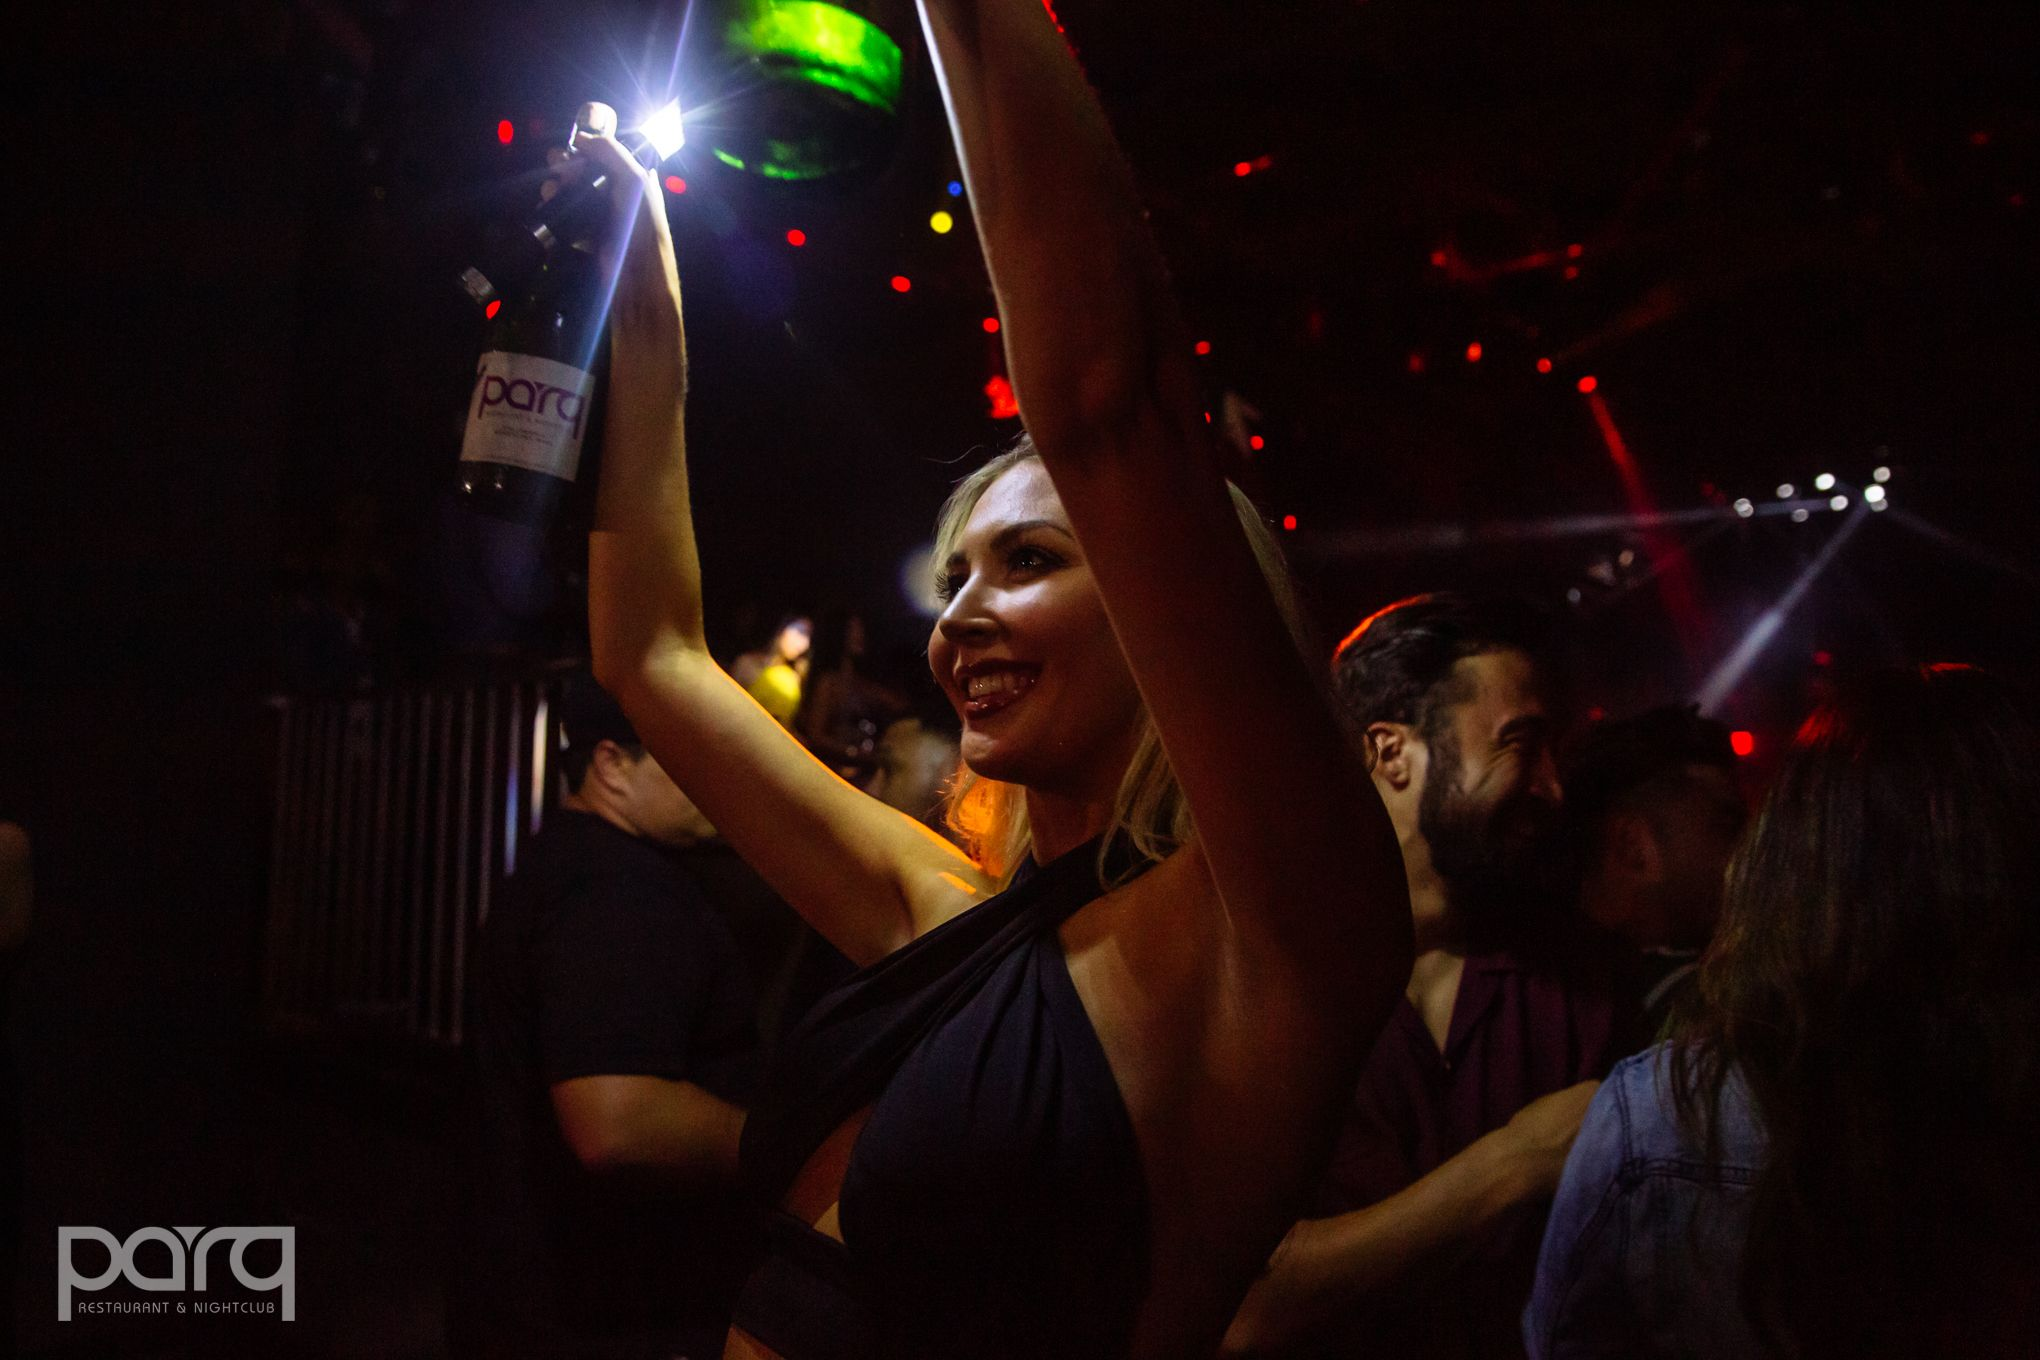 06.07.19 Parq - DJ Hollywood-6.jpg